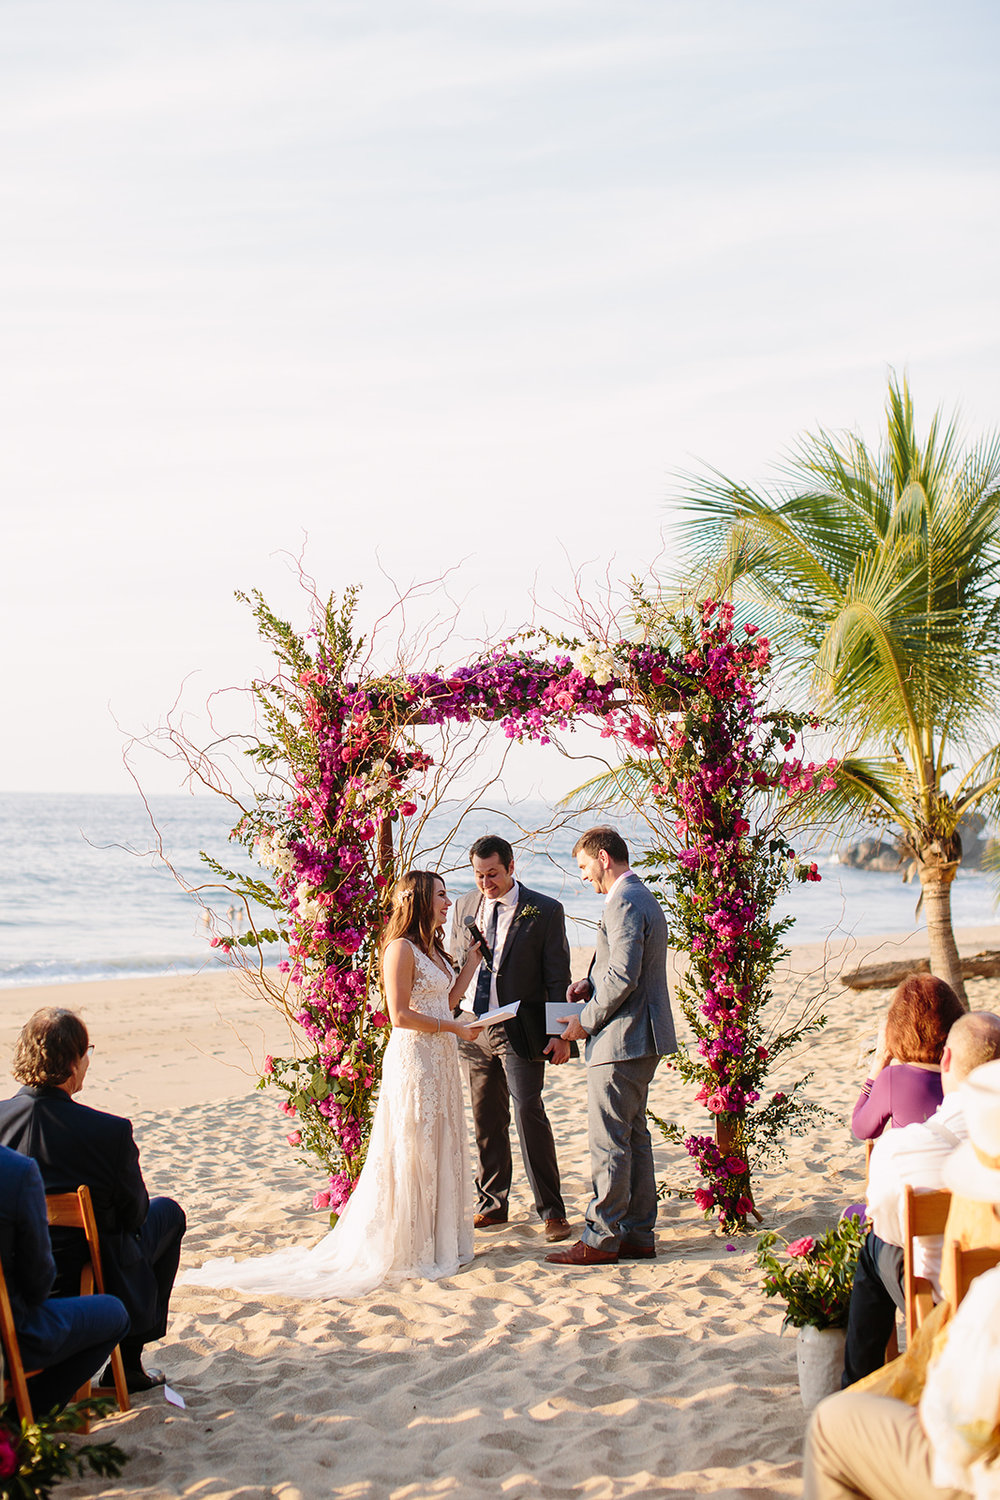 Taryn Baxter Photographer_Alexandra+Peter_Wedding-0608.jpg